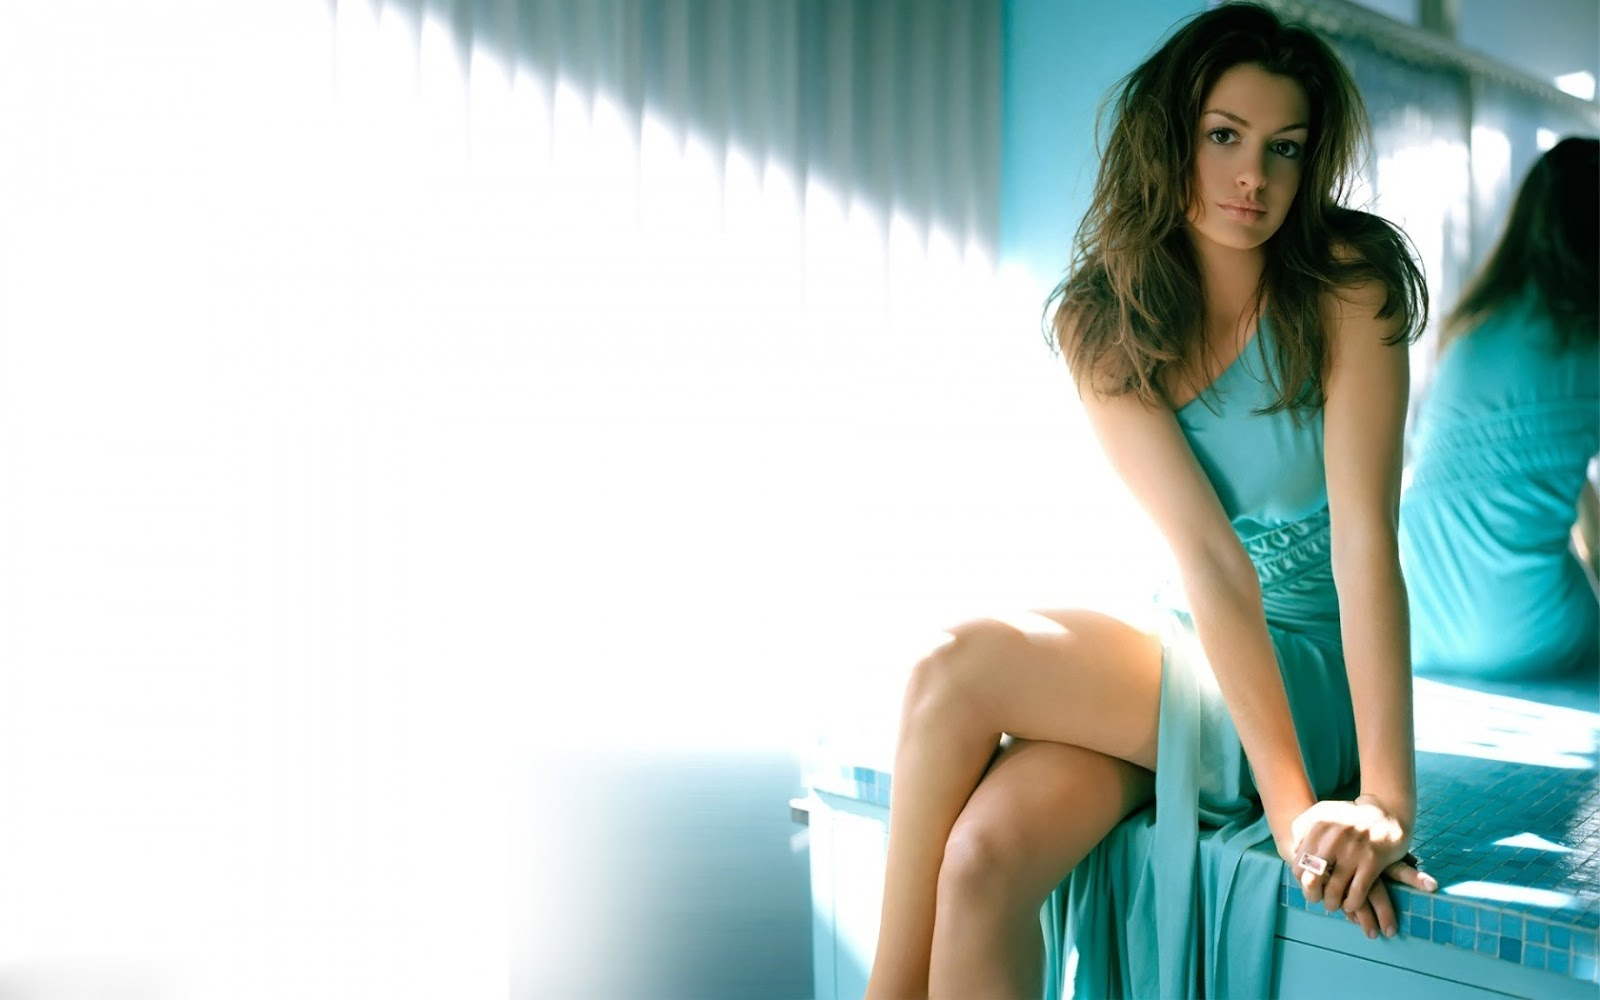 Anne Hathaway HD Wallpapers Of 2013 | Hollywood Universe